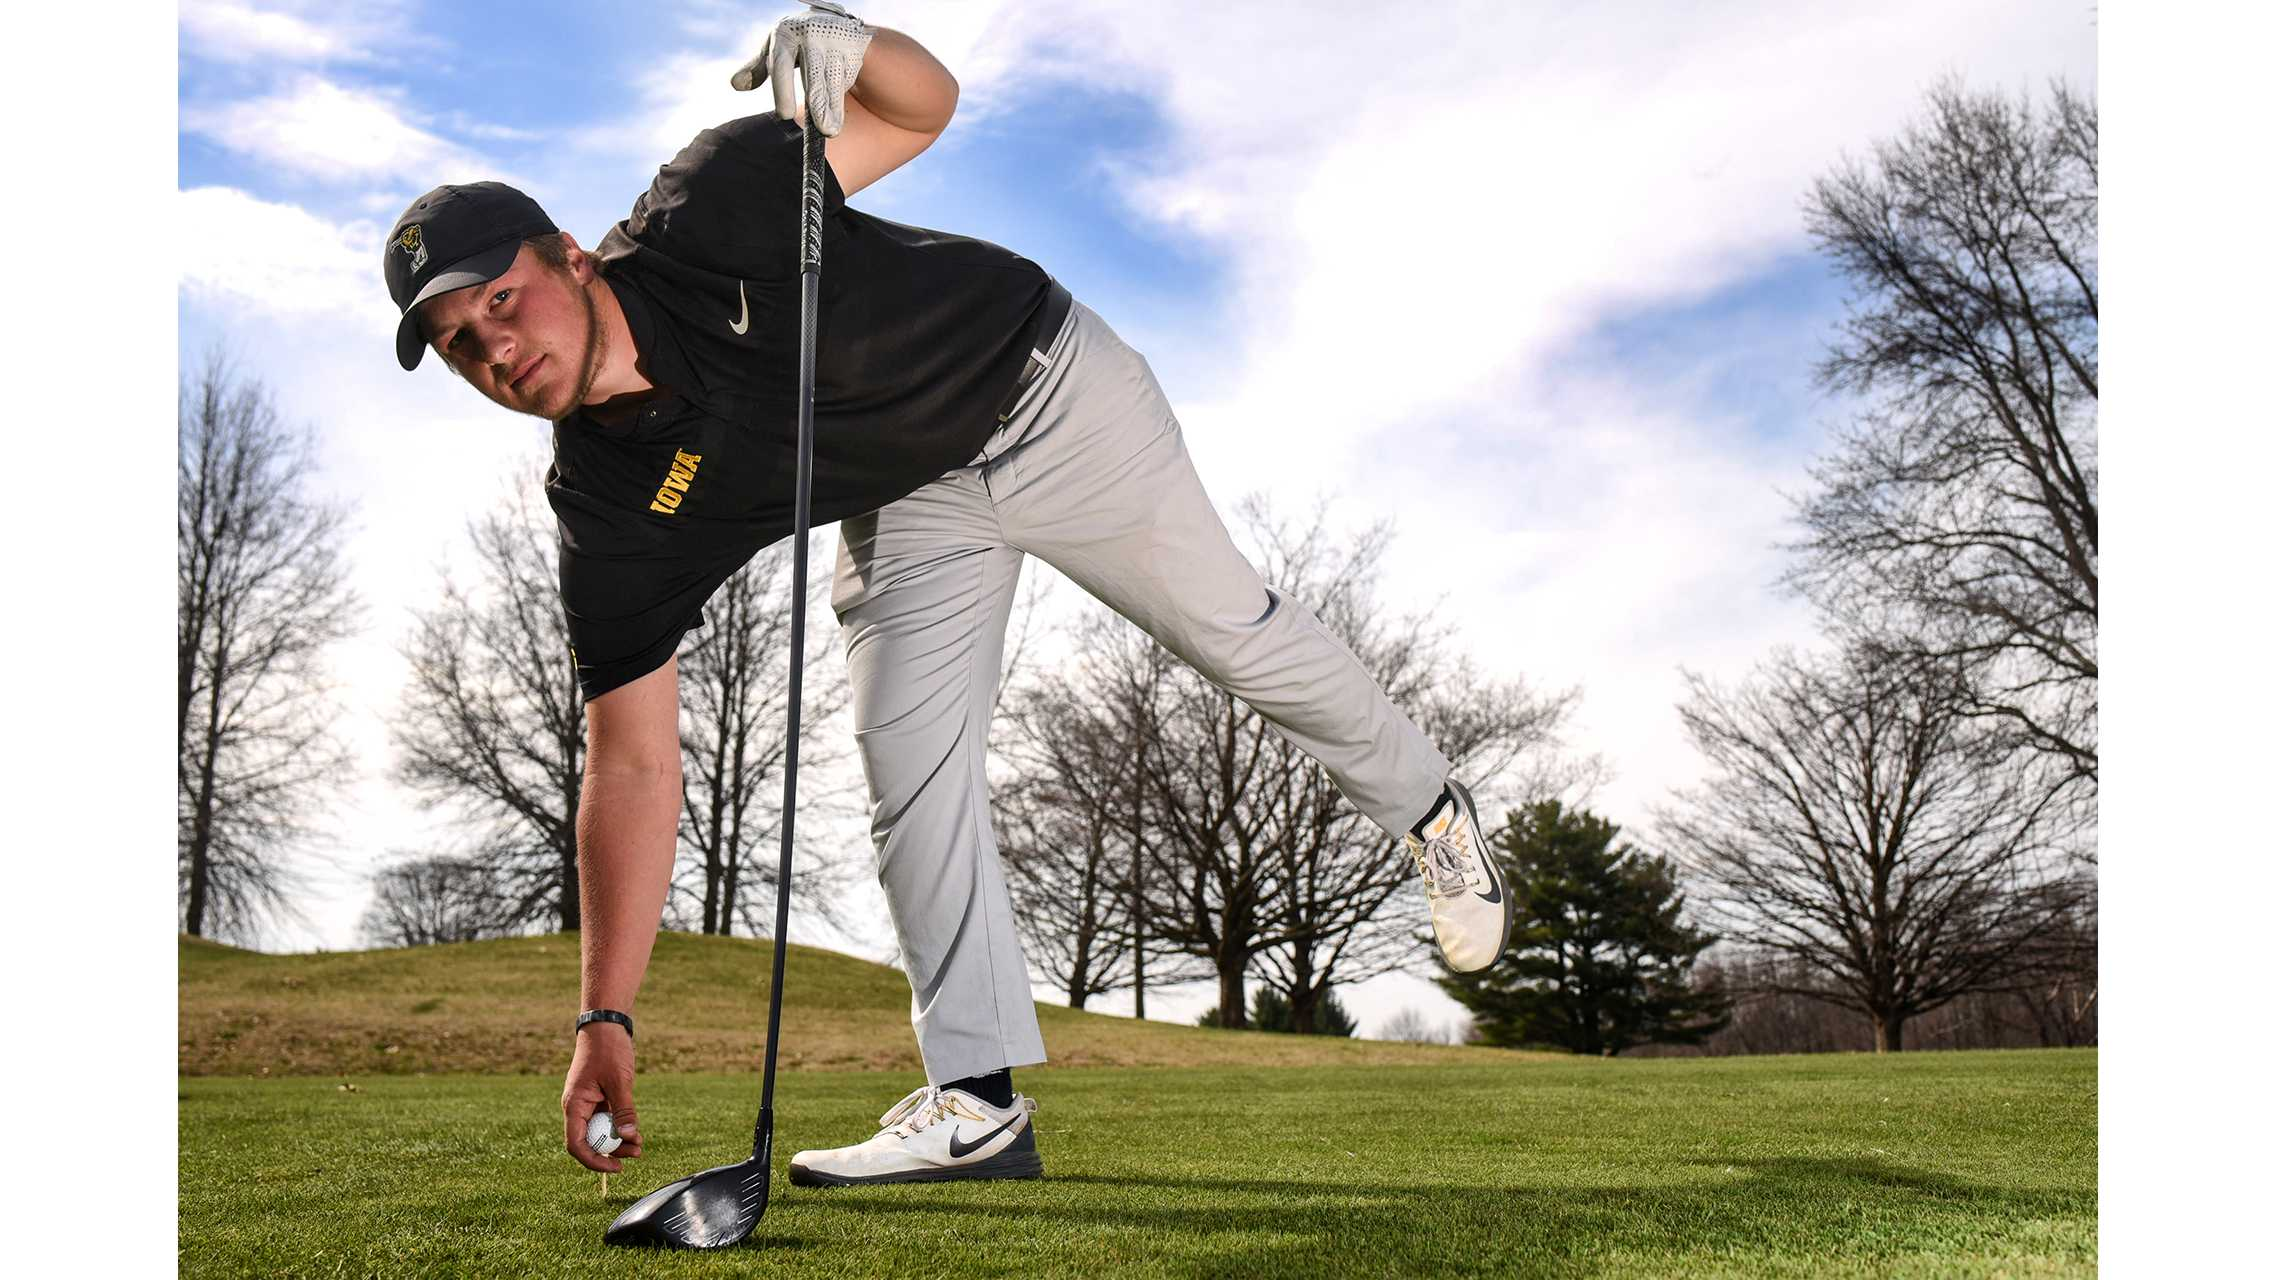 Iowa sophomore Alex Schaake poses for a portrait at Hoak Family Golf Complex on Tuesday, April 24, 2018. (Ben Allan Smith/The Daily Iowan)